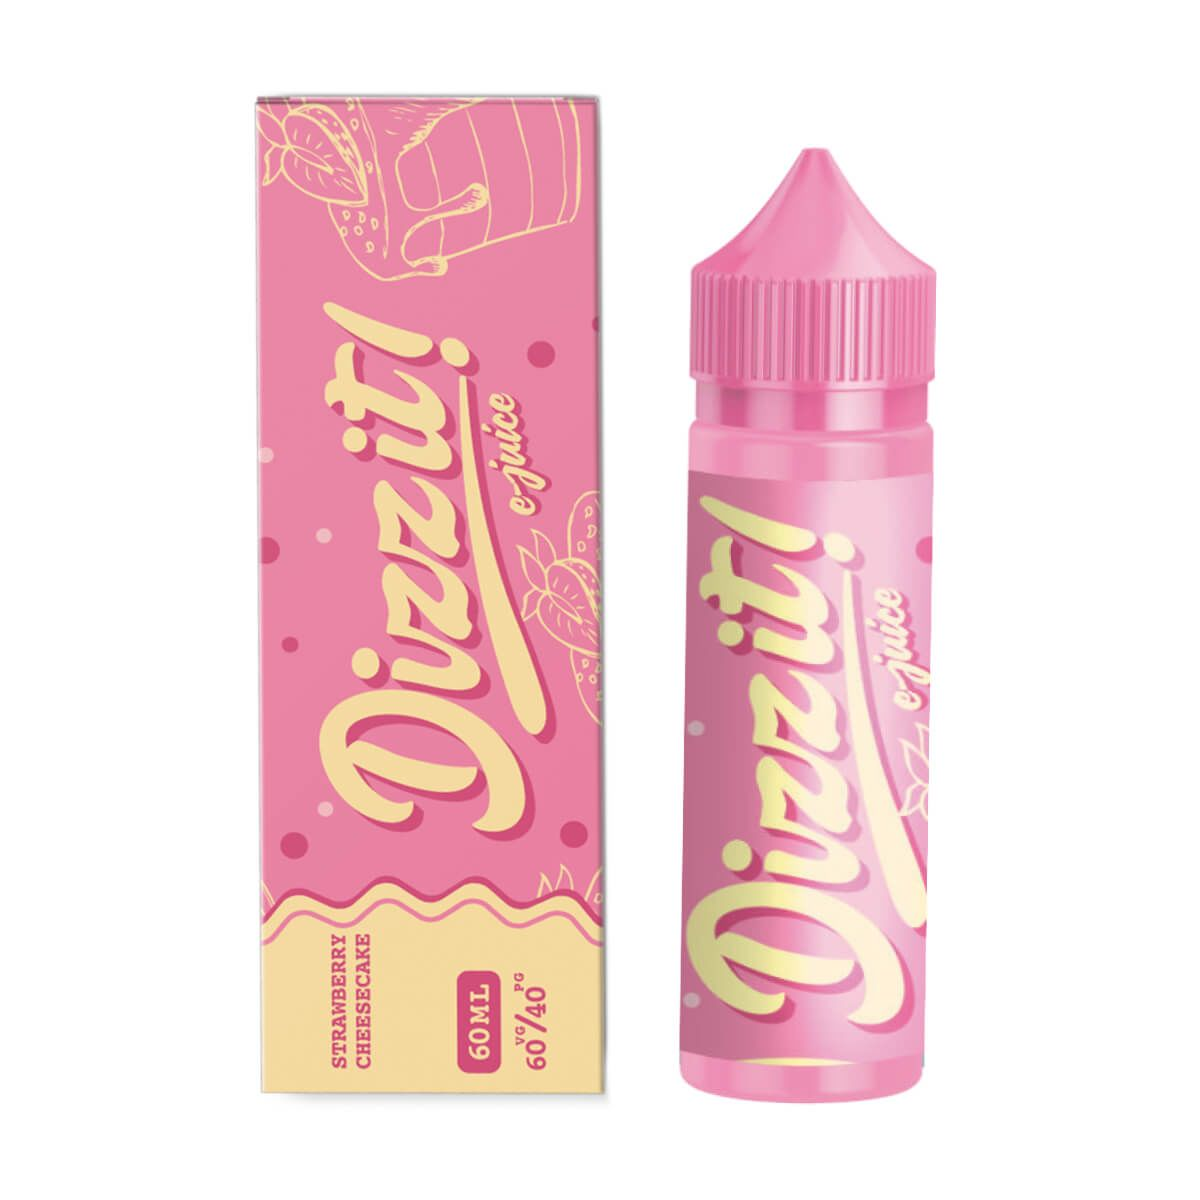 Dizz It Strawberry Cheesecake 60ml - Cheesecake de Frutilla